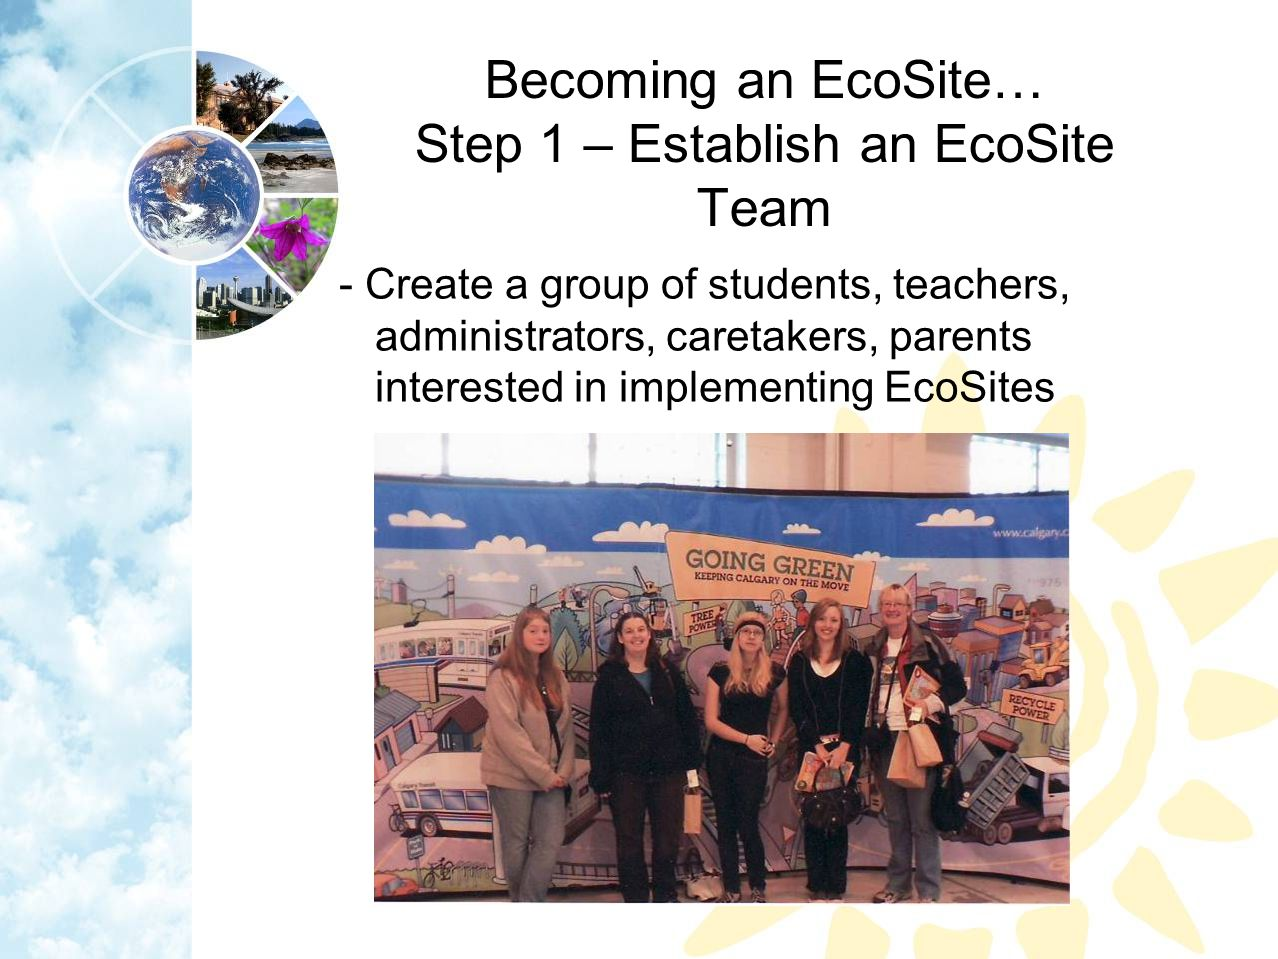 Becoming an EcoSite… Step 1 – Establish an EcoSite Team - Create a group of students, teachers, administrators, caretakers, parents interested in implementing EcoSites